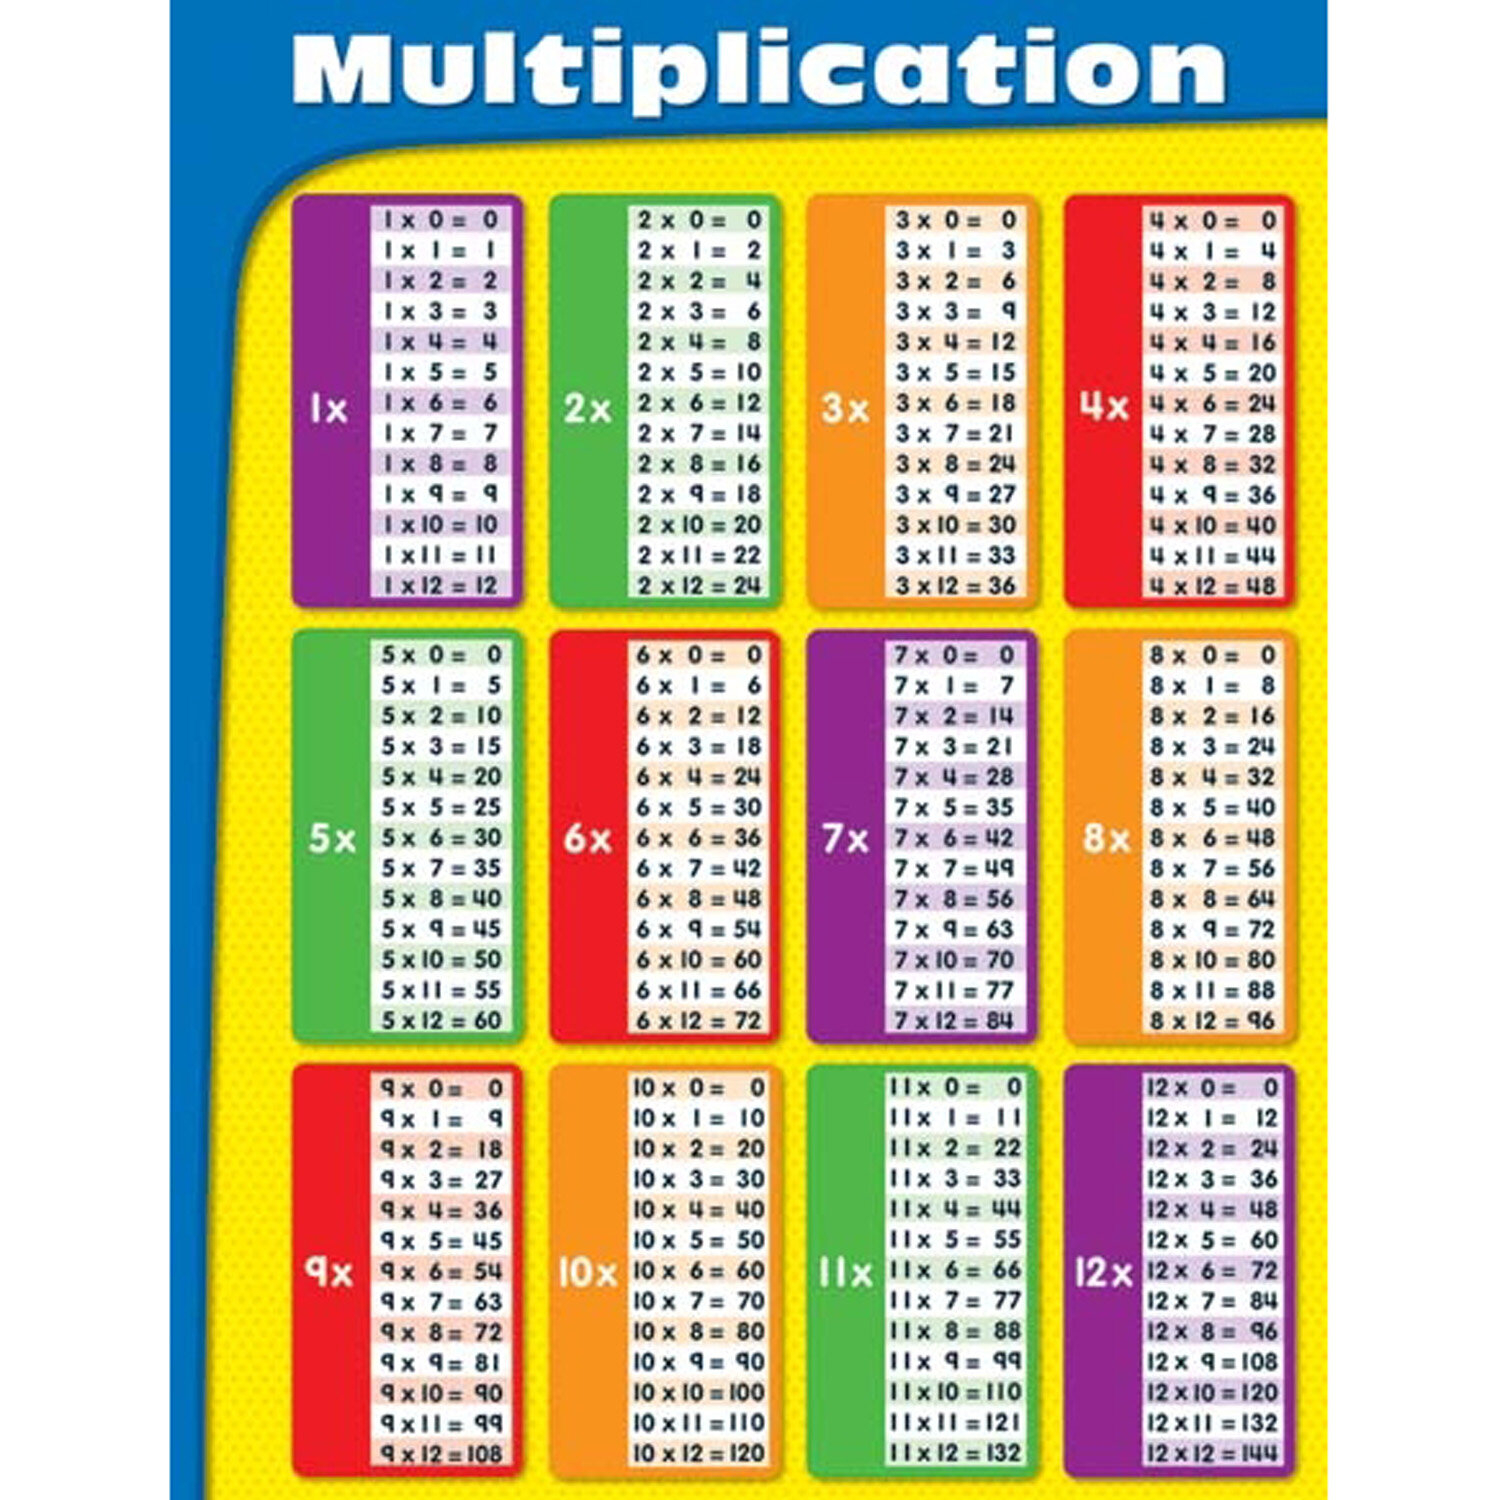 Multiplication Tables Laminated Chart